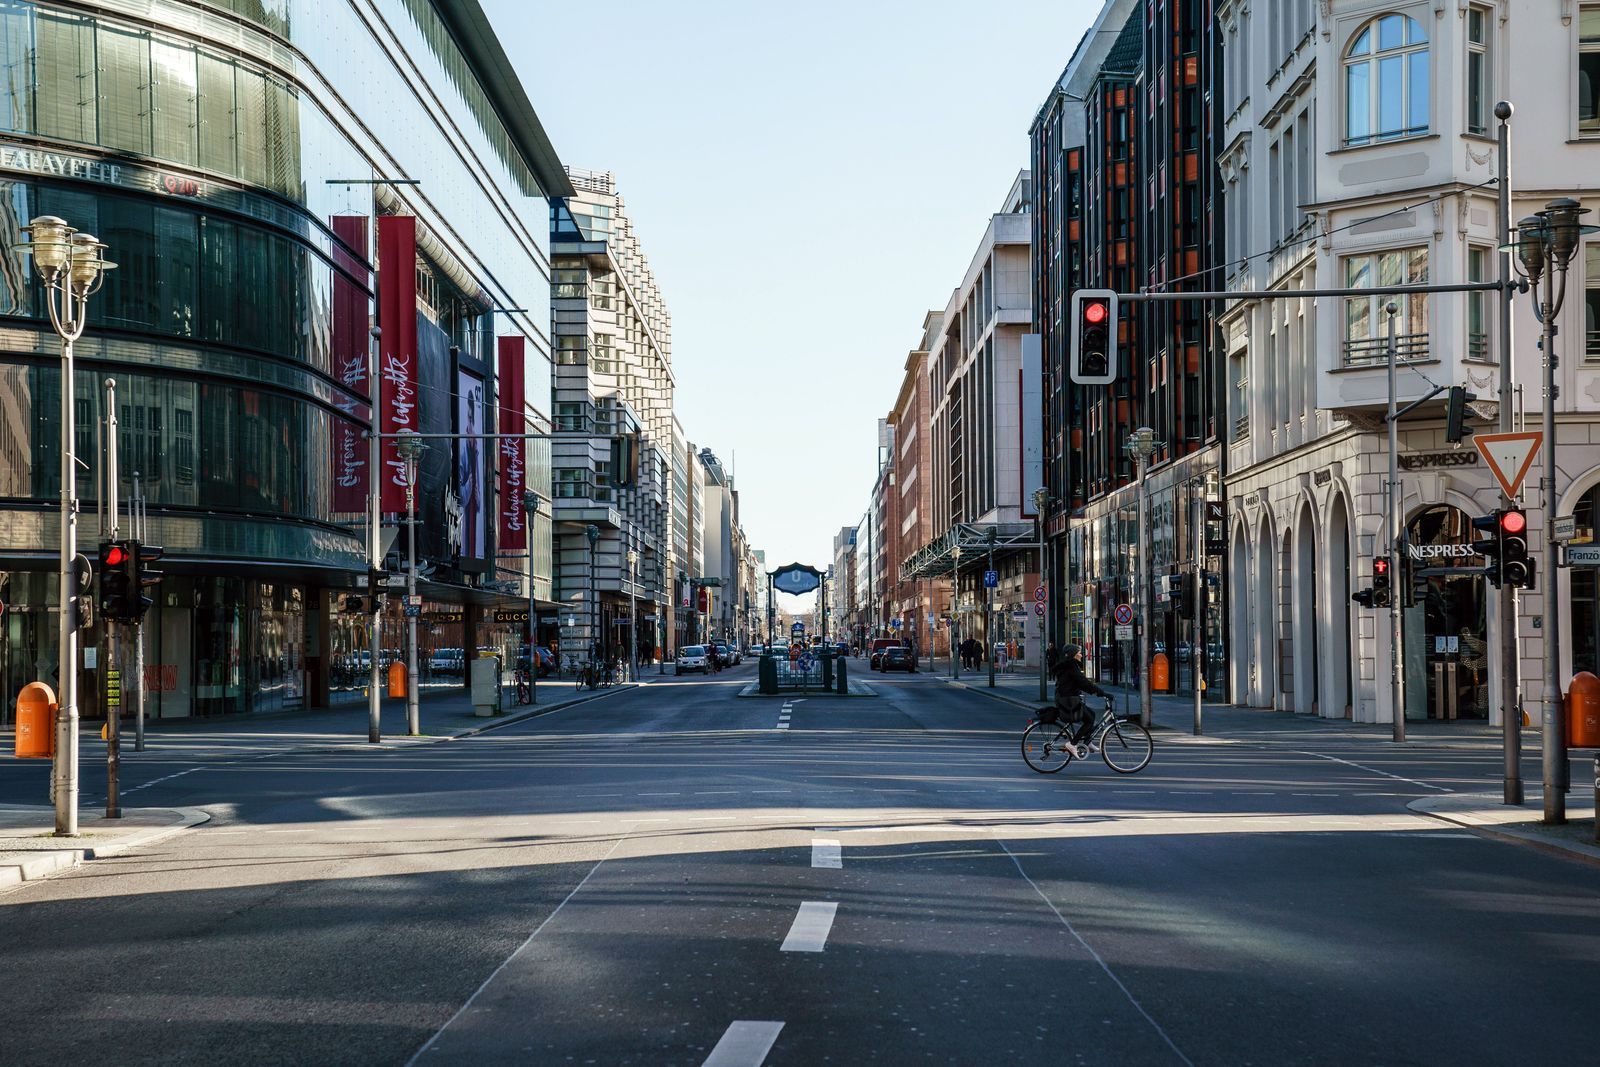 Empty streets during coronavirus crisis in Berlin, Germany - 22 Mar 2020